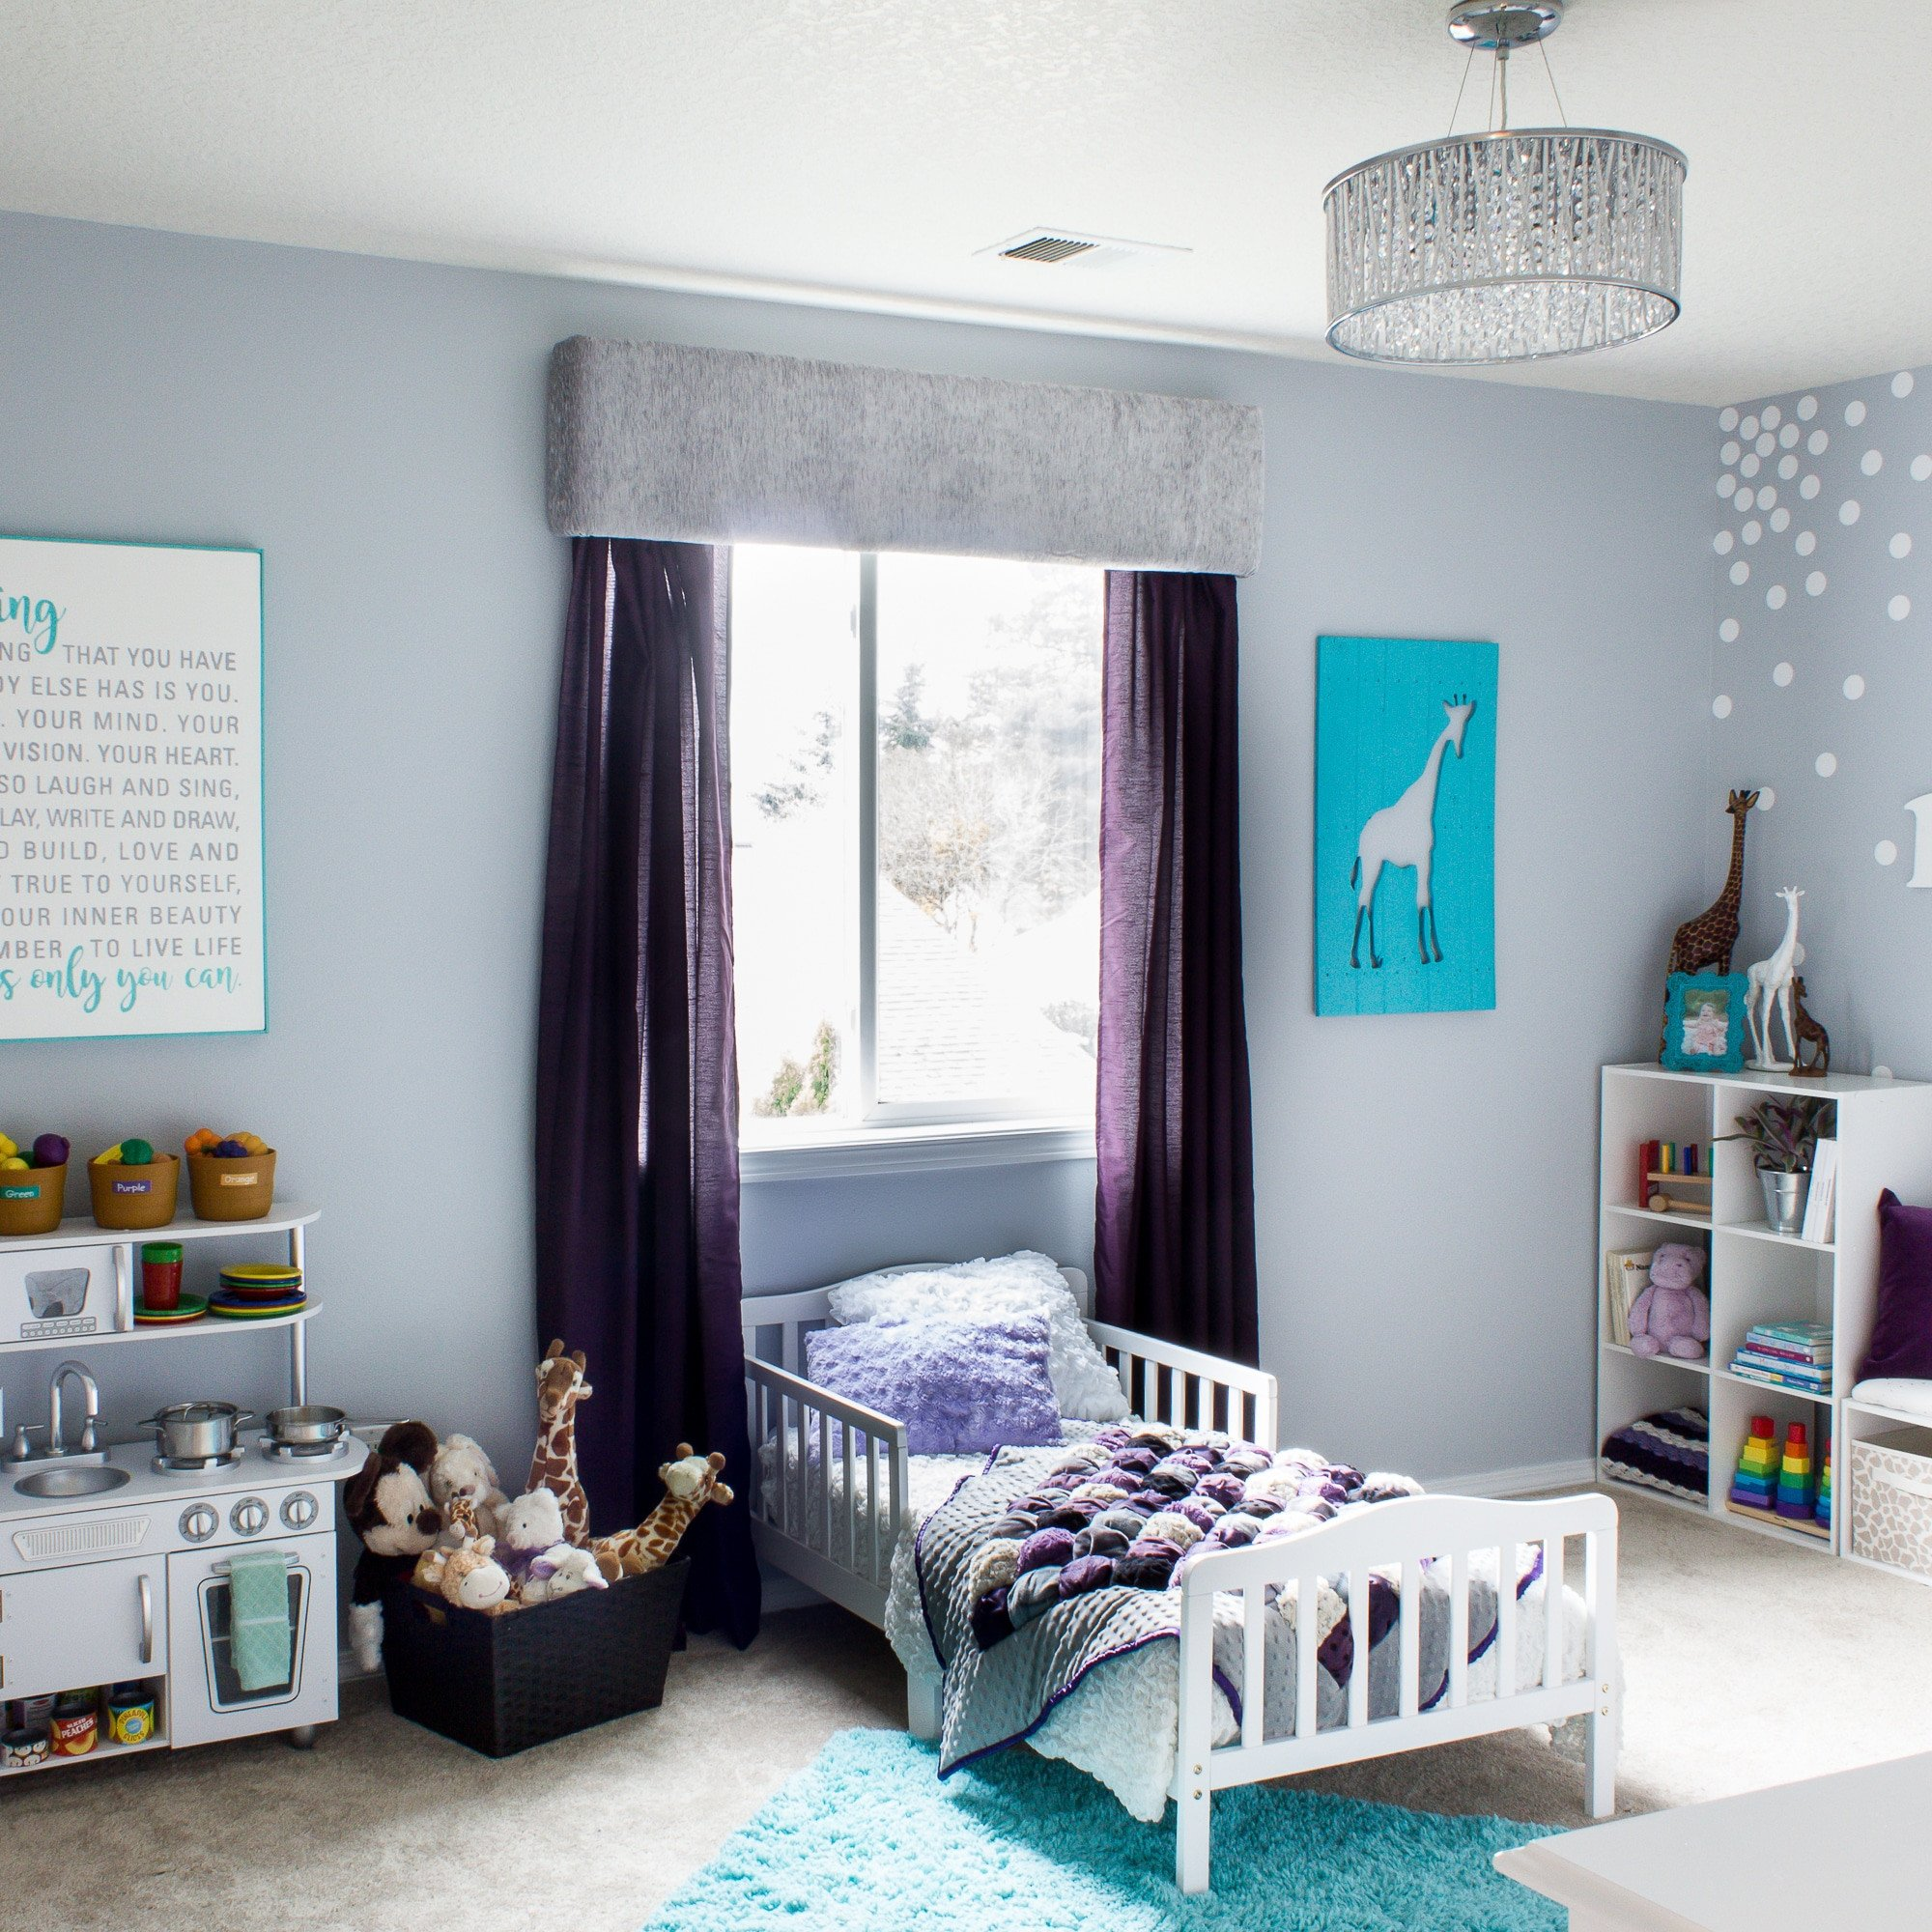 Toddler Girl Room Decor Ideas Inspirational Cute toddler Girl Room Ideas with May Diy Decor Tutorials and Plans